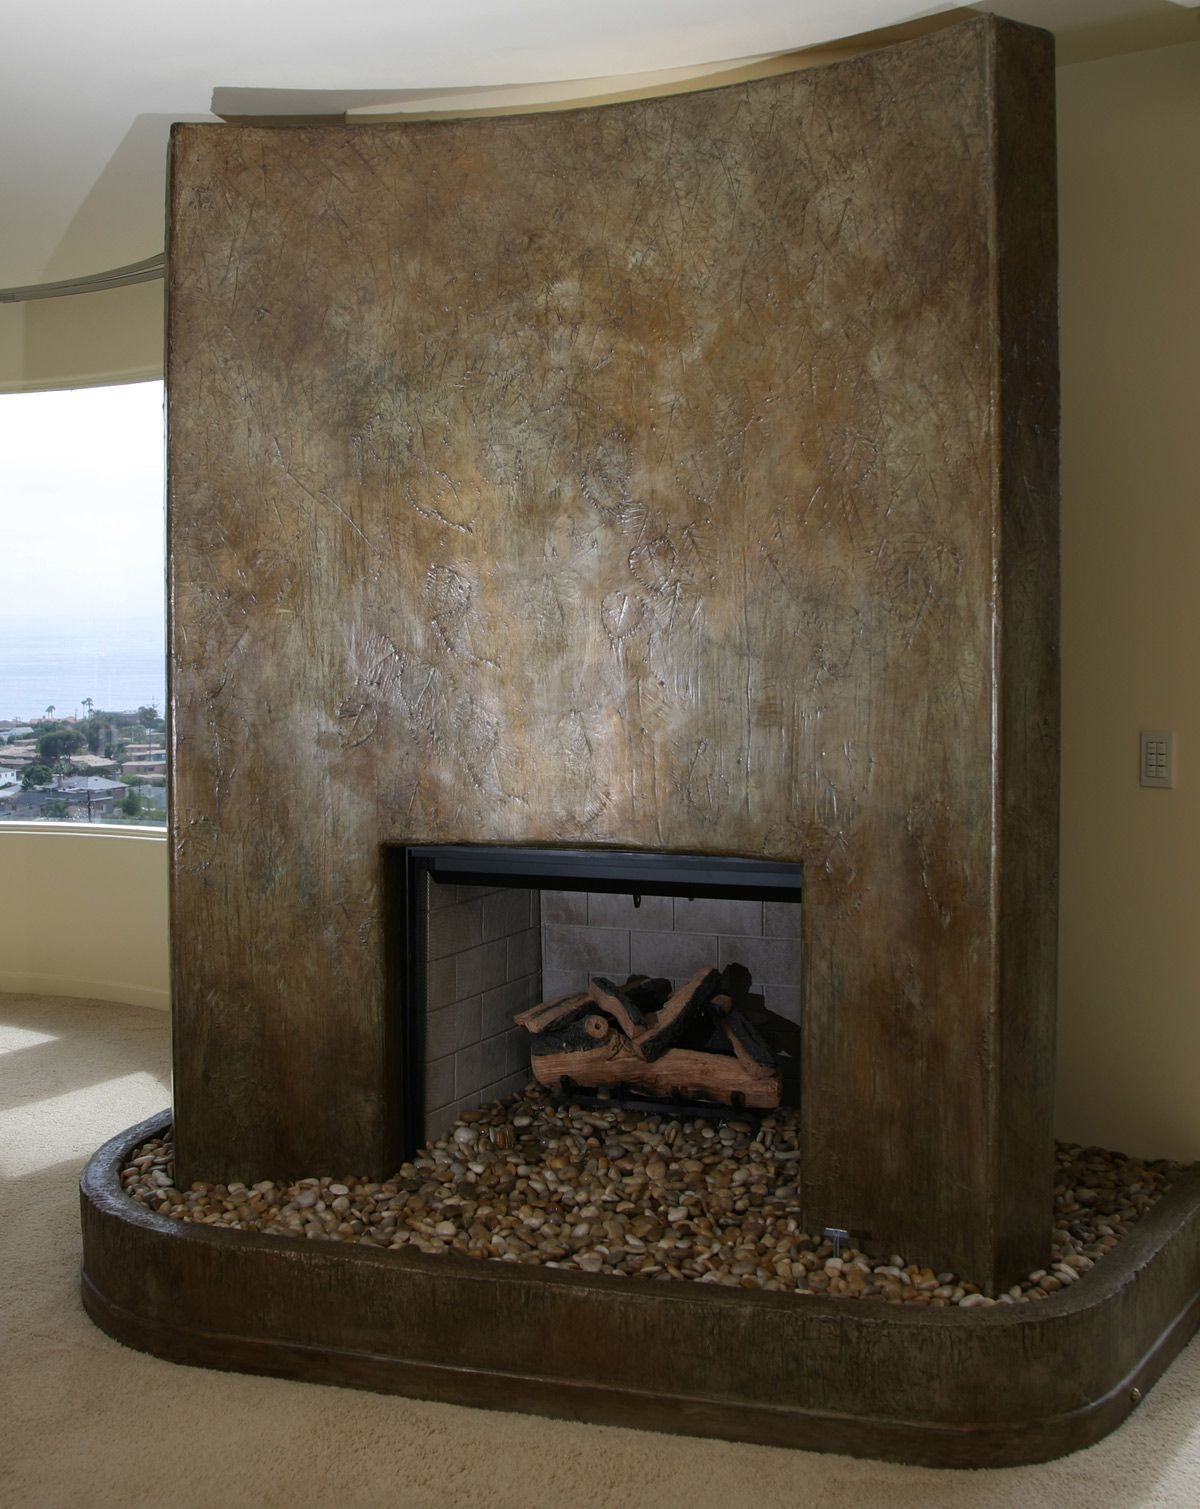 stucco fireplaces. Stucco Fireplaces  John Was Able To Translate My Vision Of What I Wanted For Fireplace